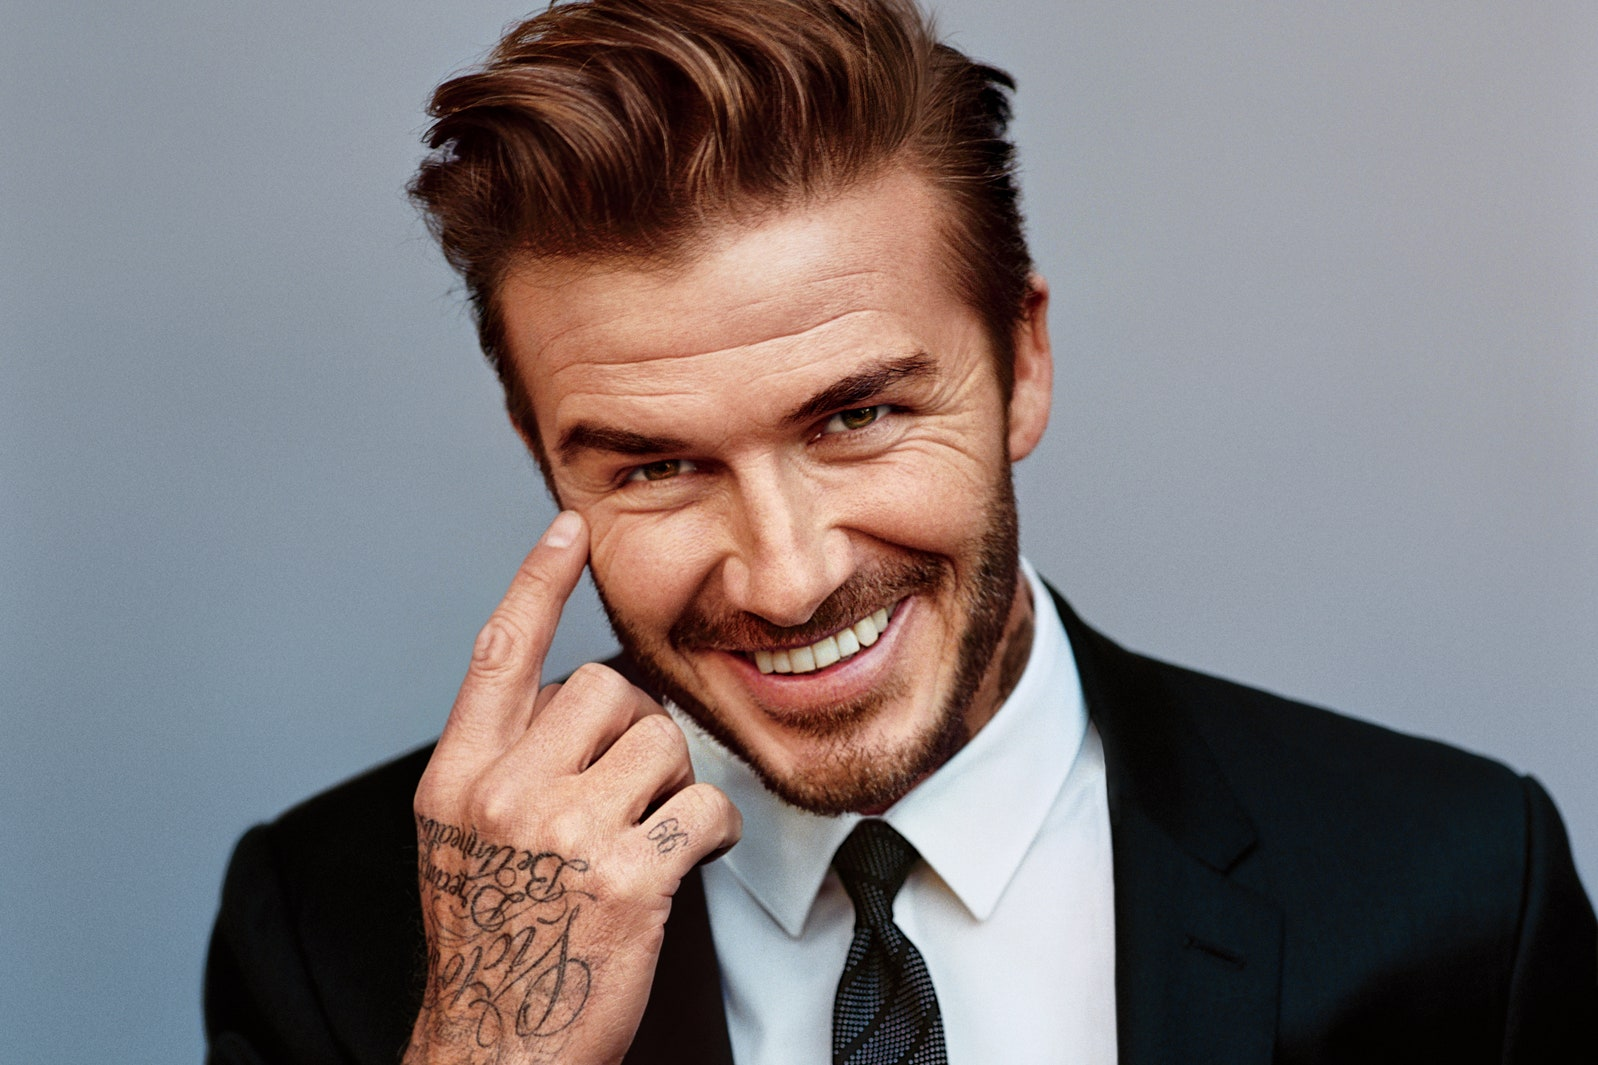 David Beckham Phone number, Email Id, Fanmail, Instagram, Tiktok, and Contact Details